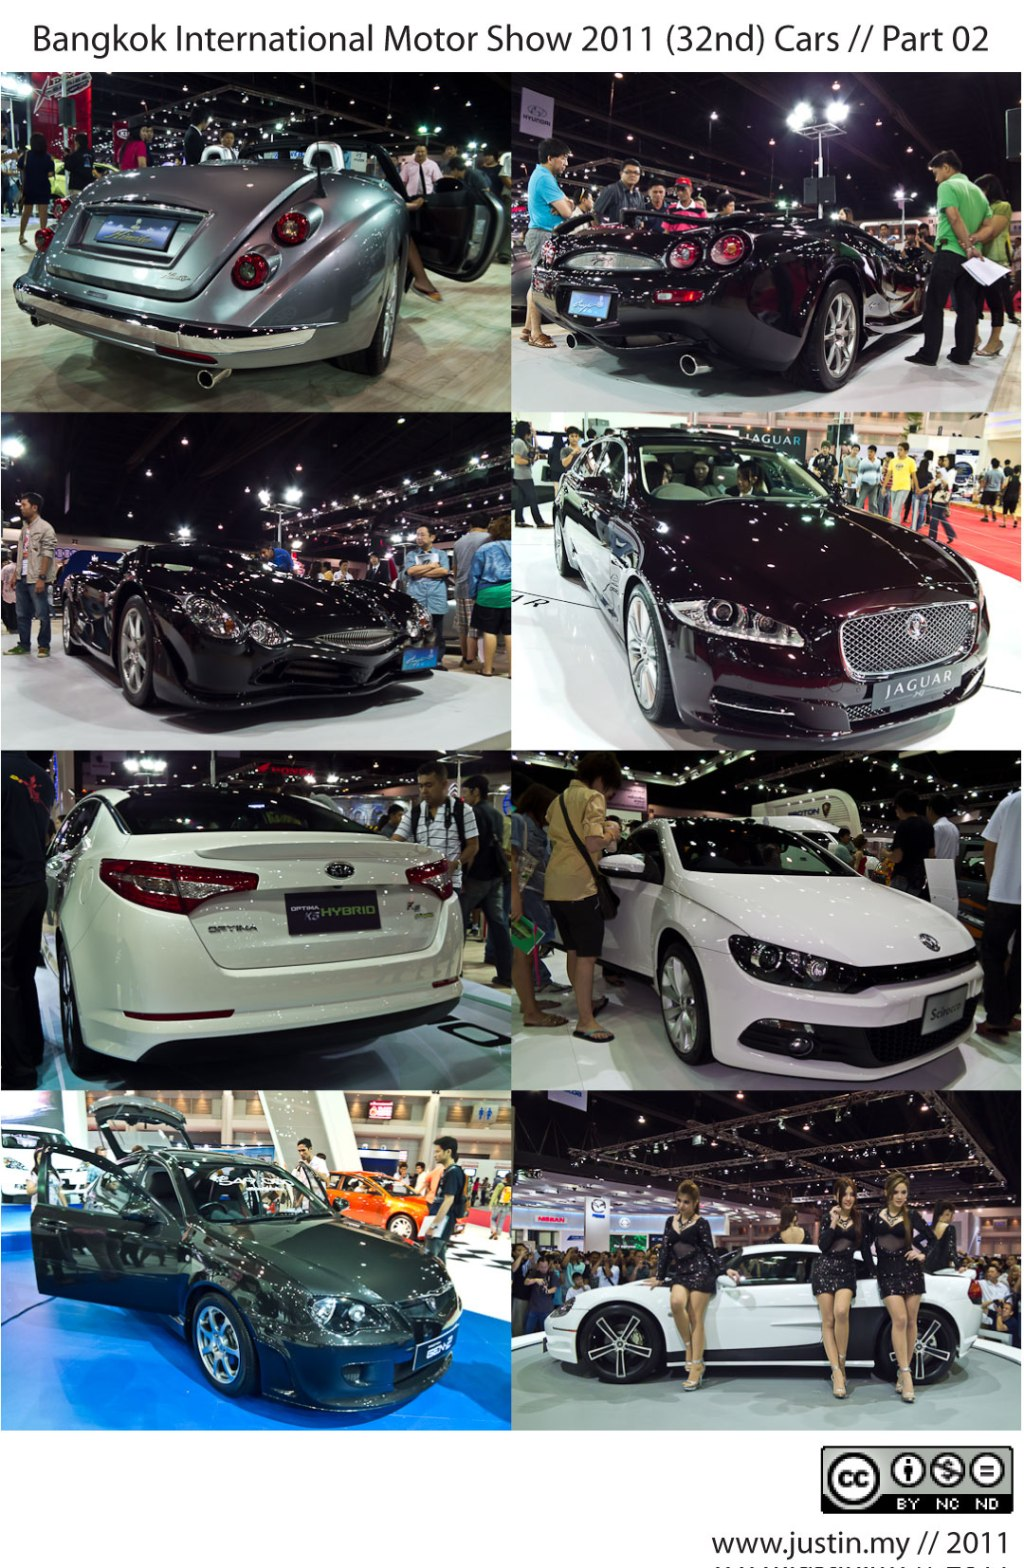 Bangkok International Motor Show 2011 Cars 02